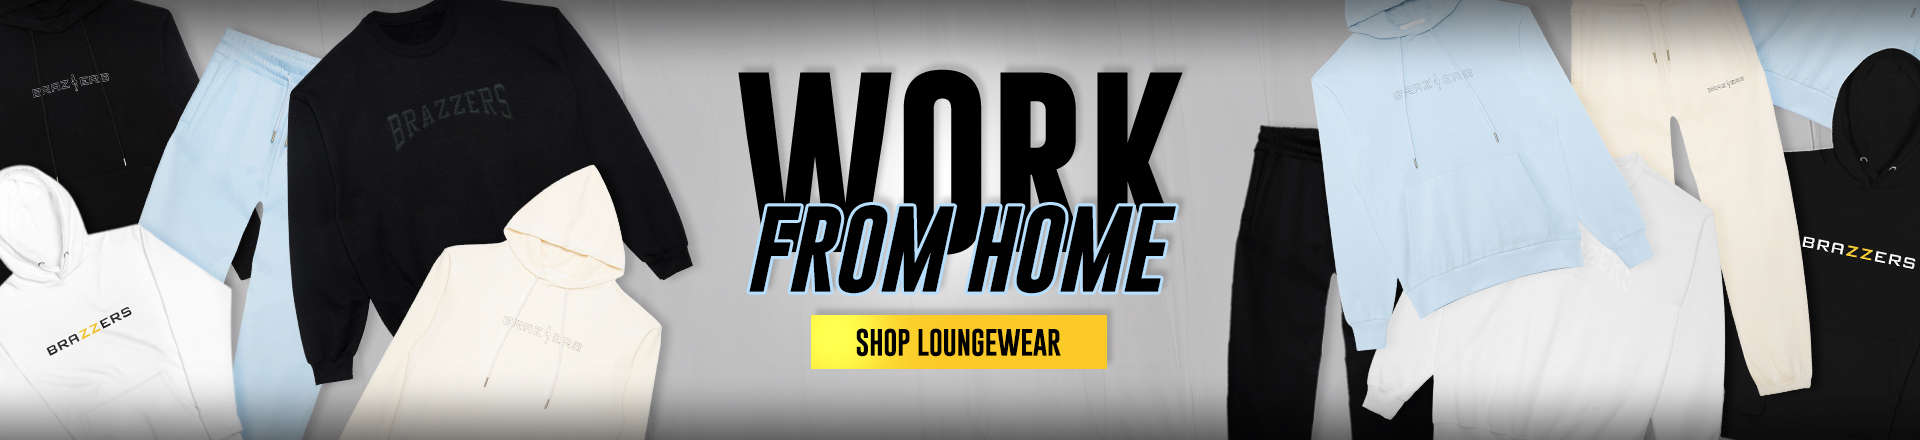 ZZS-Work from home banner_storebanner_1920x440